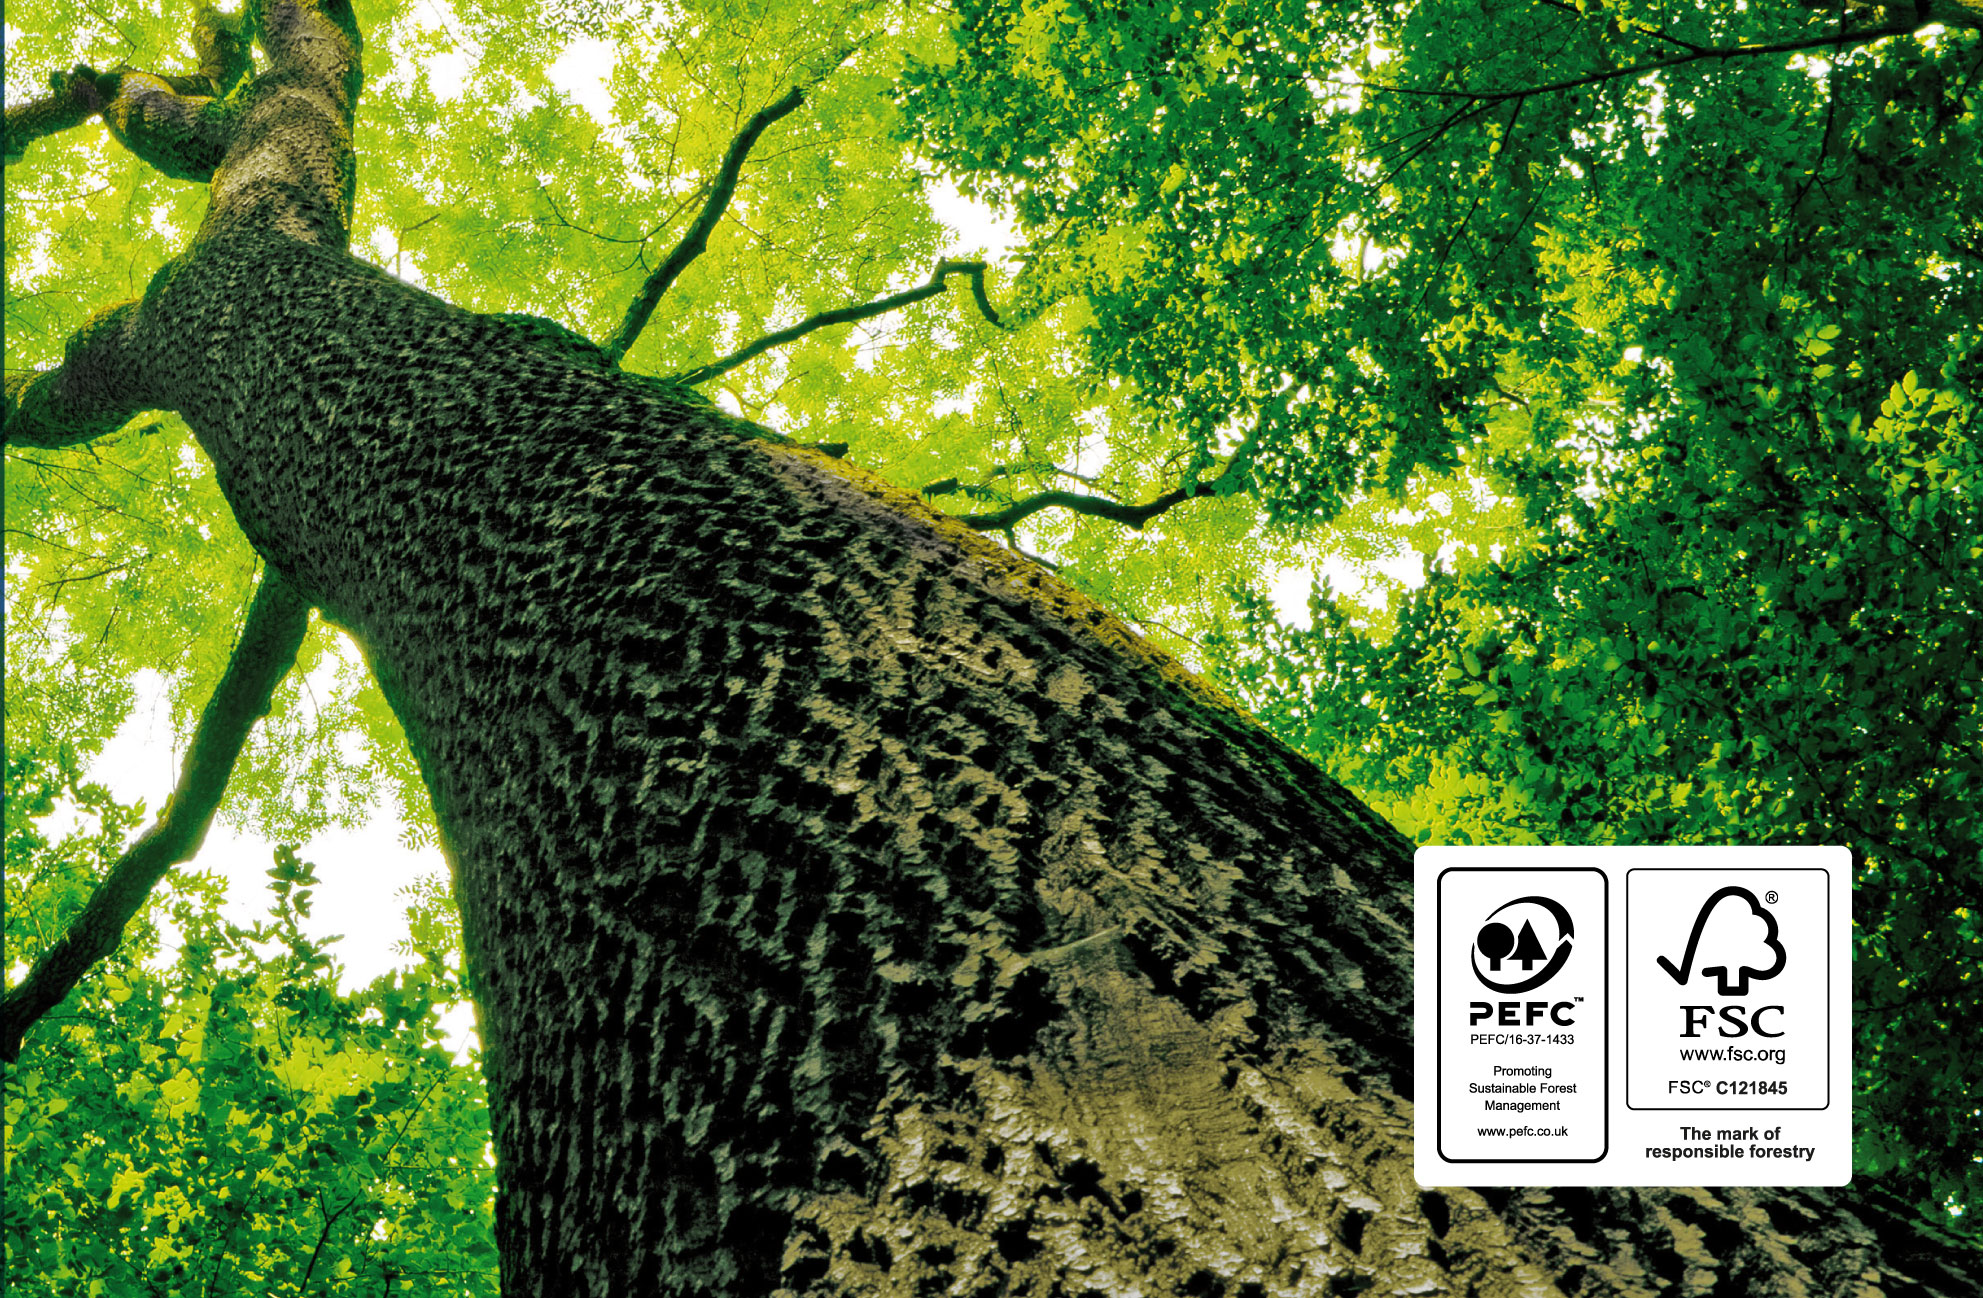 environmental image including FSC and PEFC logos